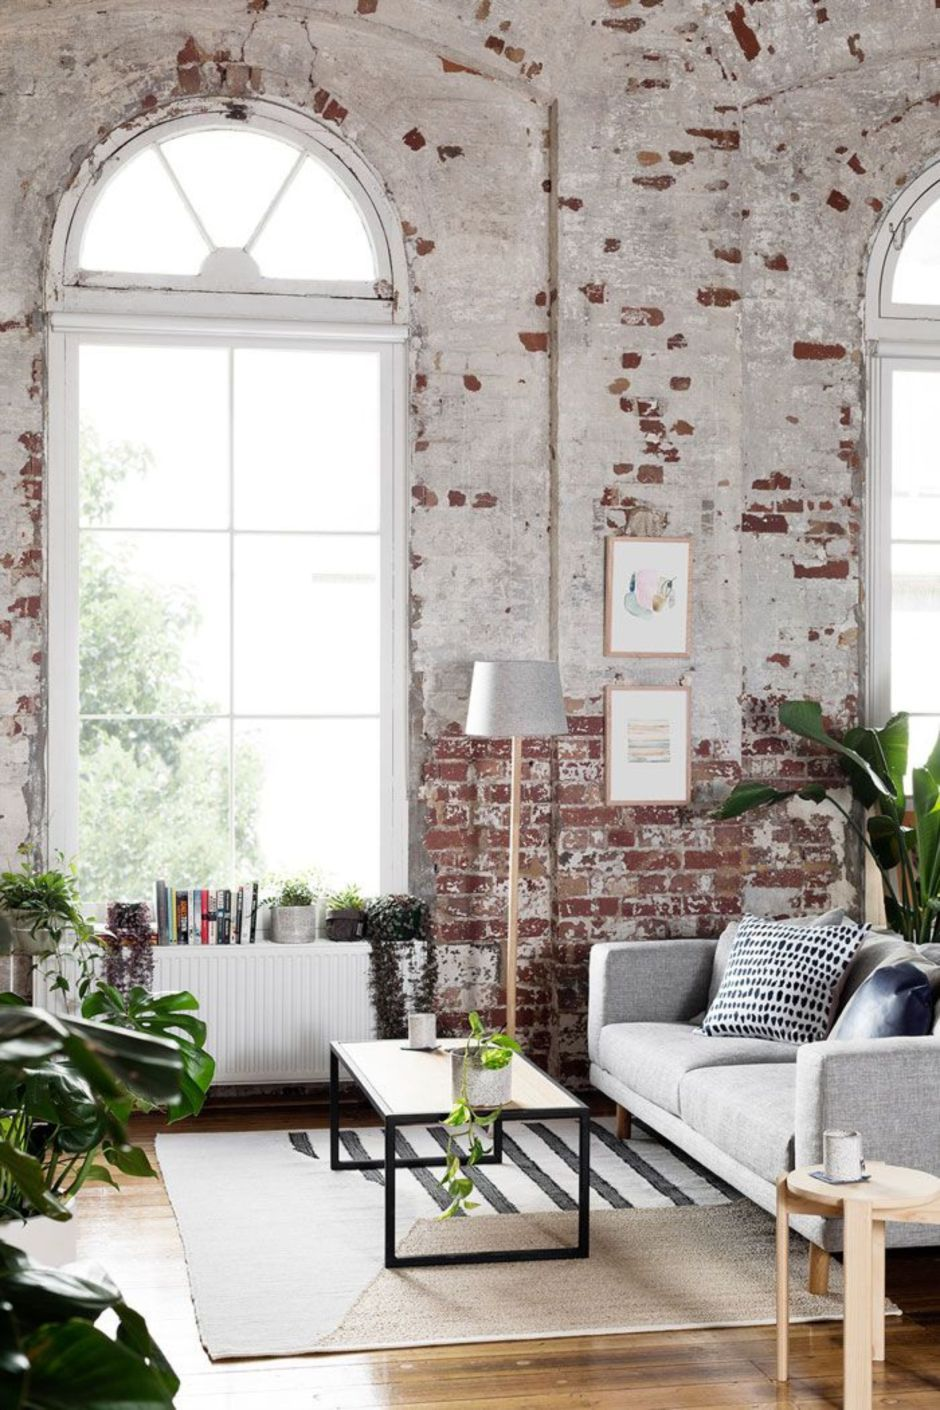 Fantastic Retro Living Room Design with Exposed Brick Wall | Retro ...